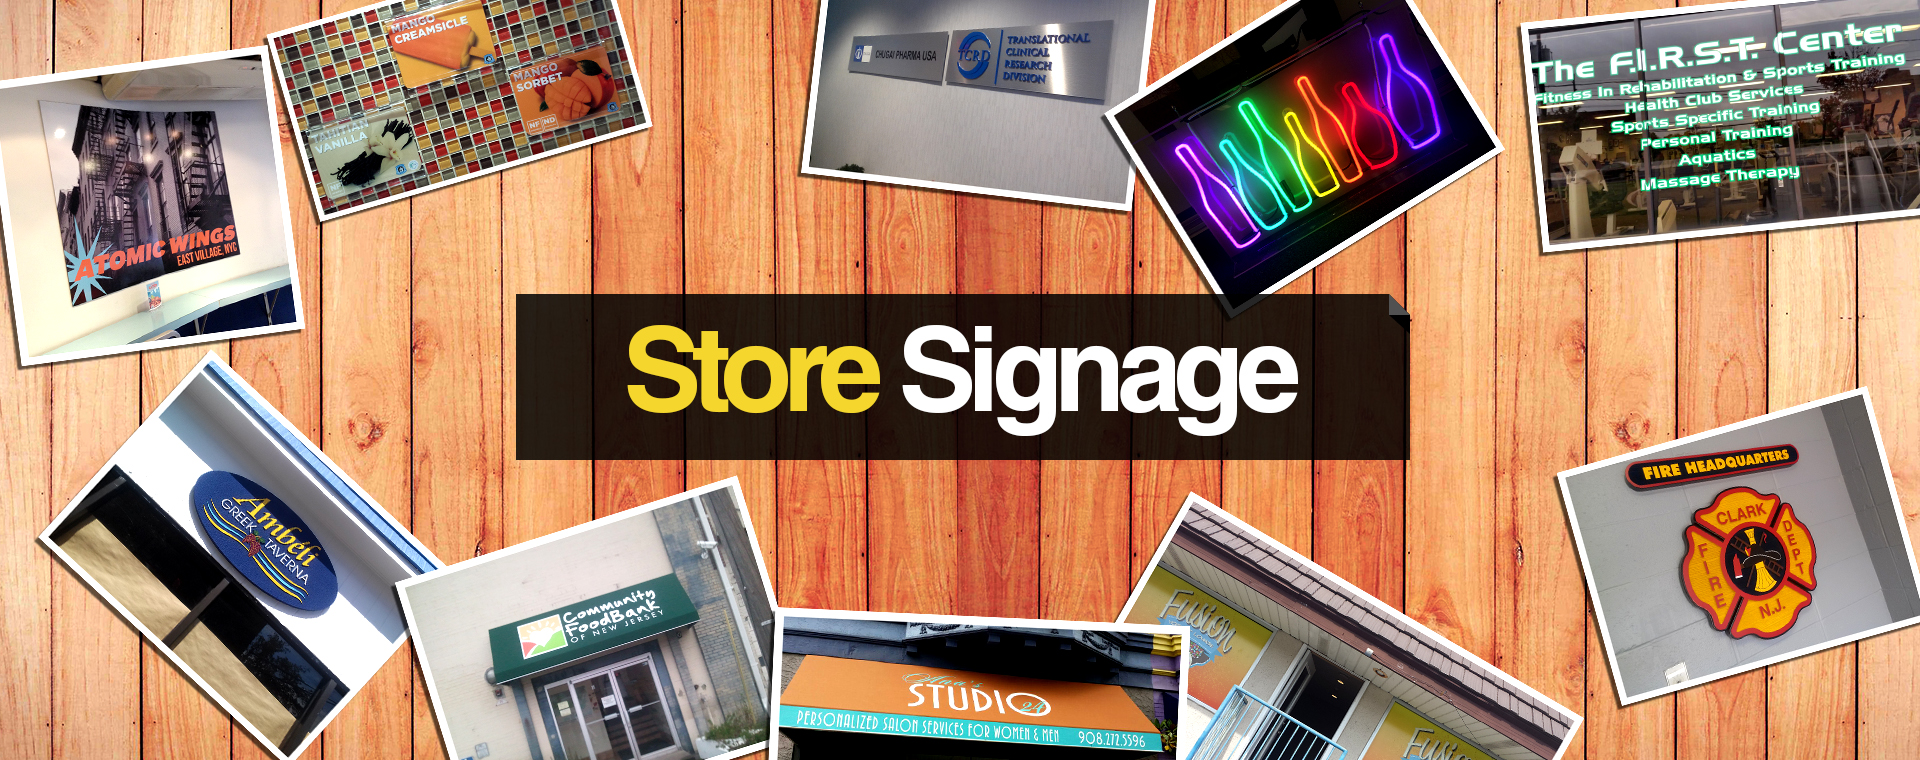 Banner_Store Signage